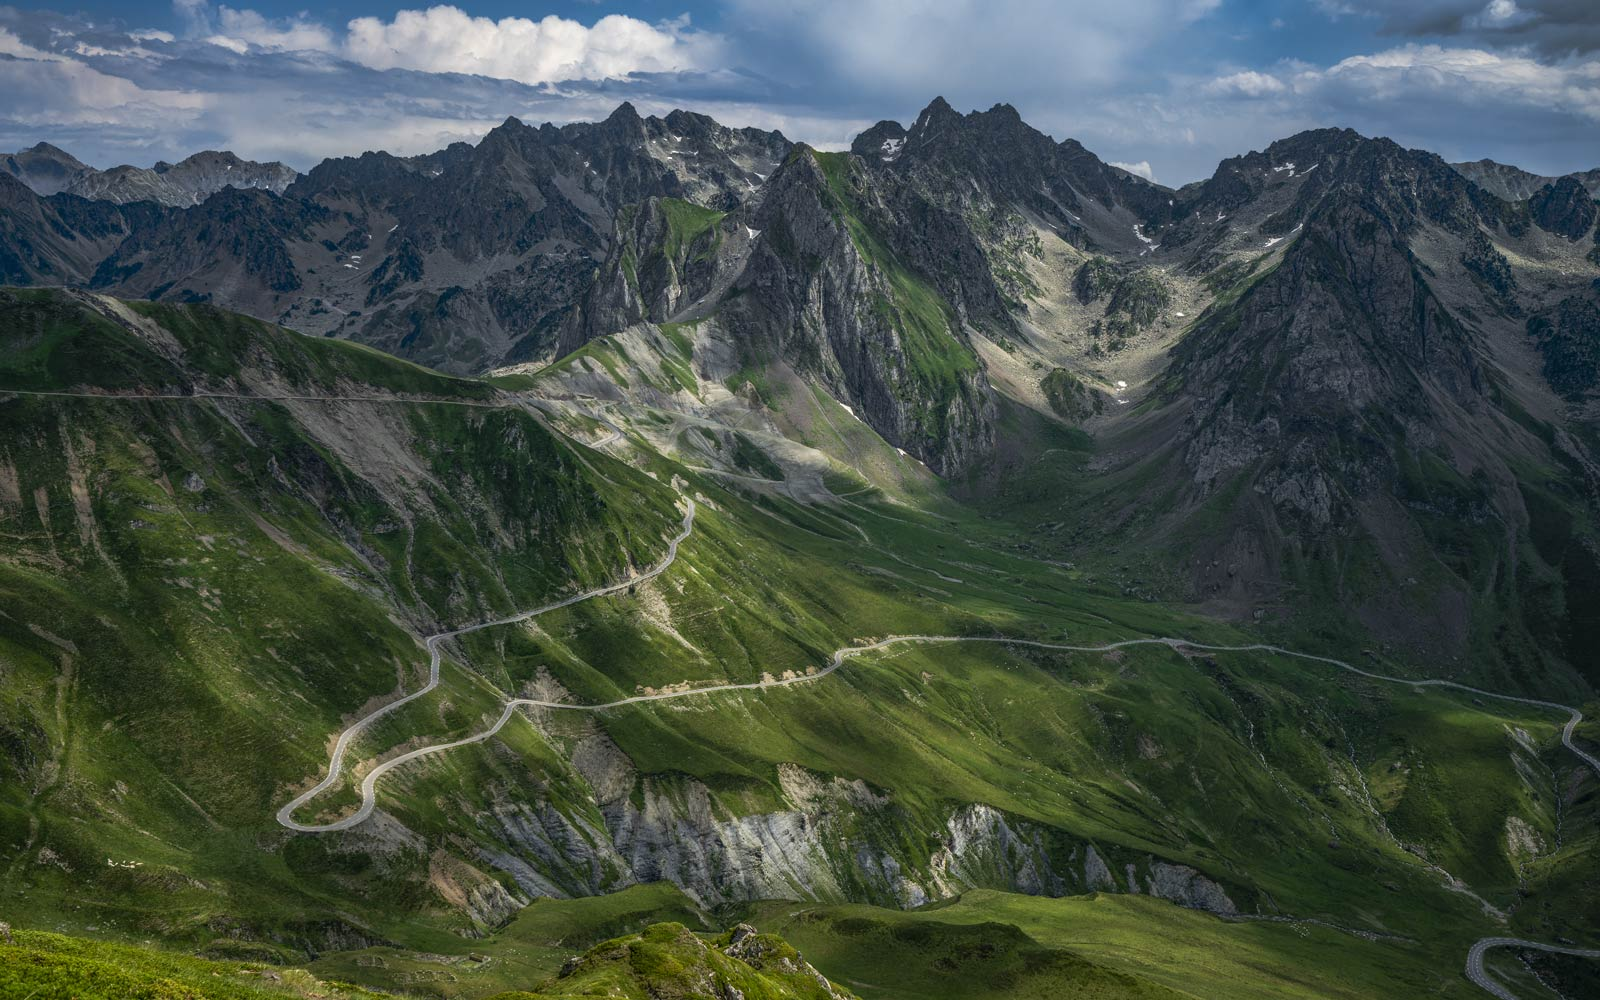 Col du Tourmalet - Great Cycling Road Climbs by davidt